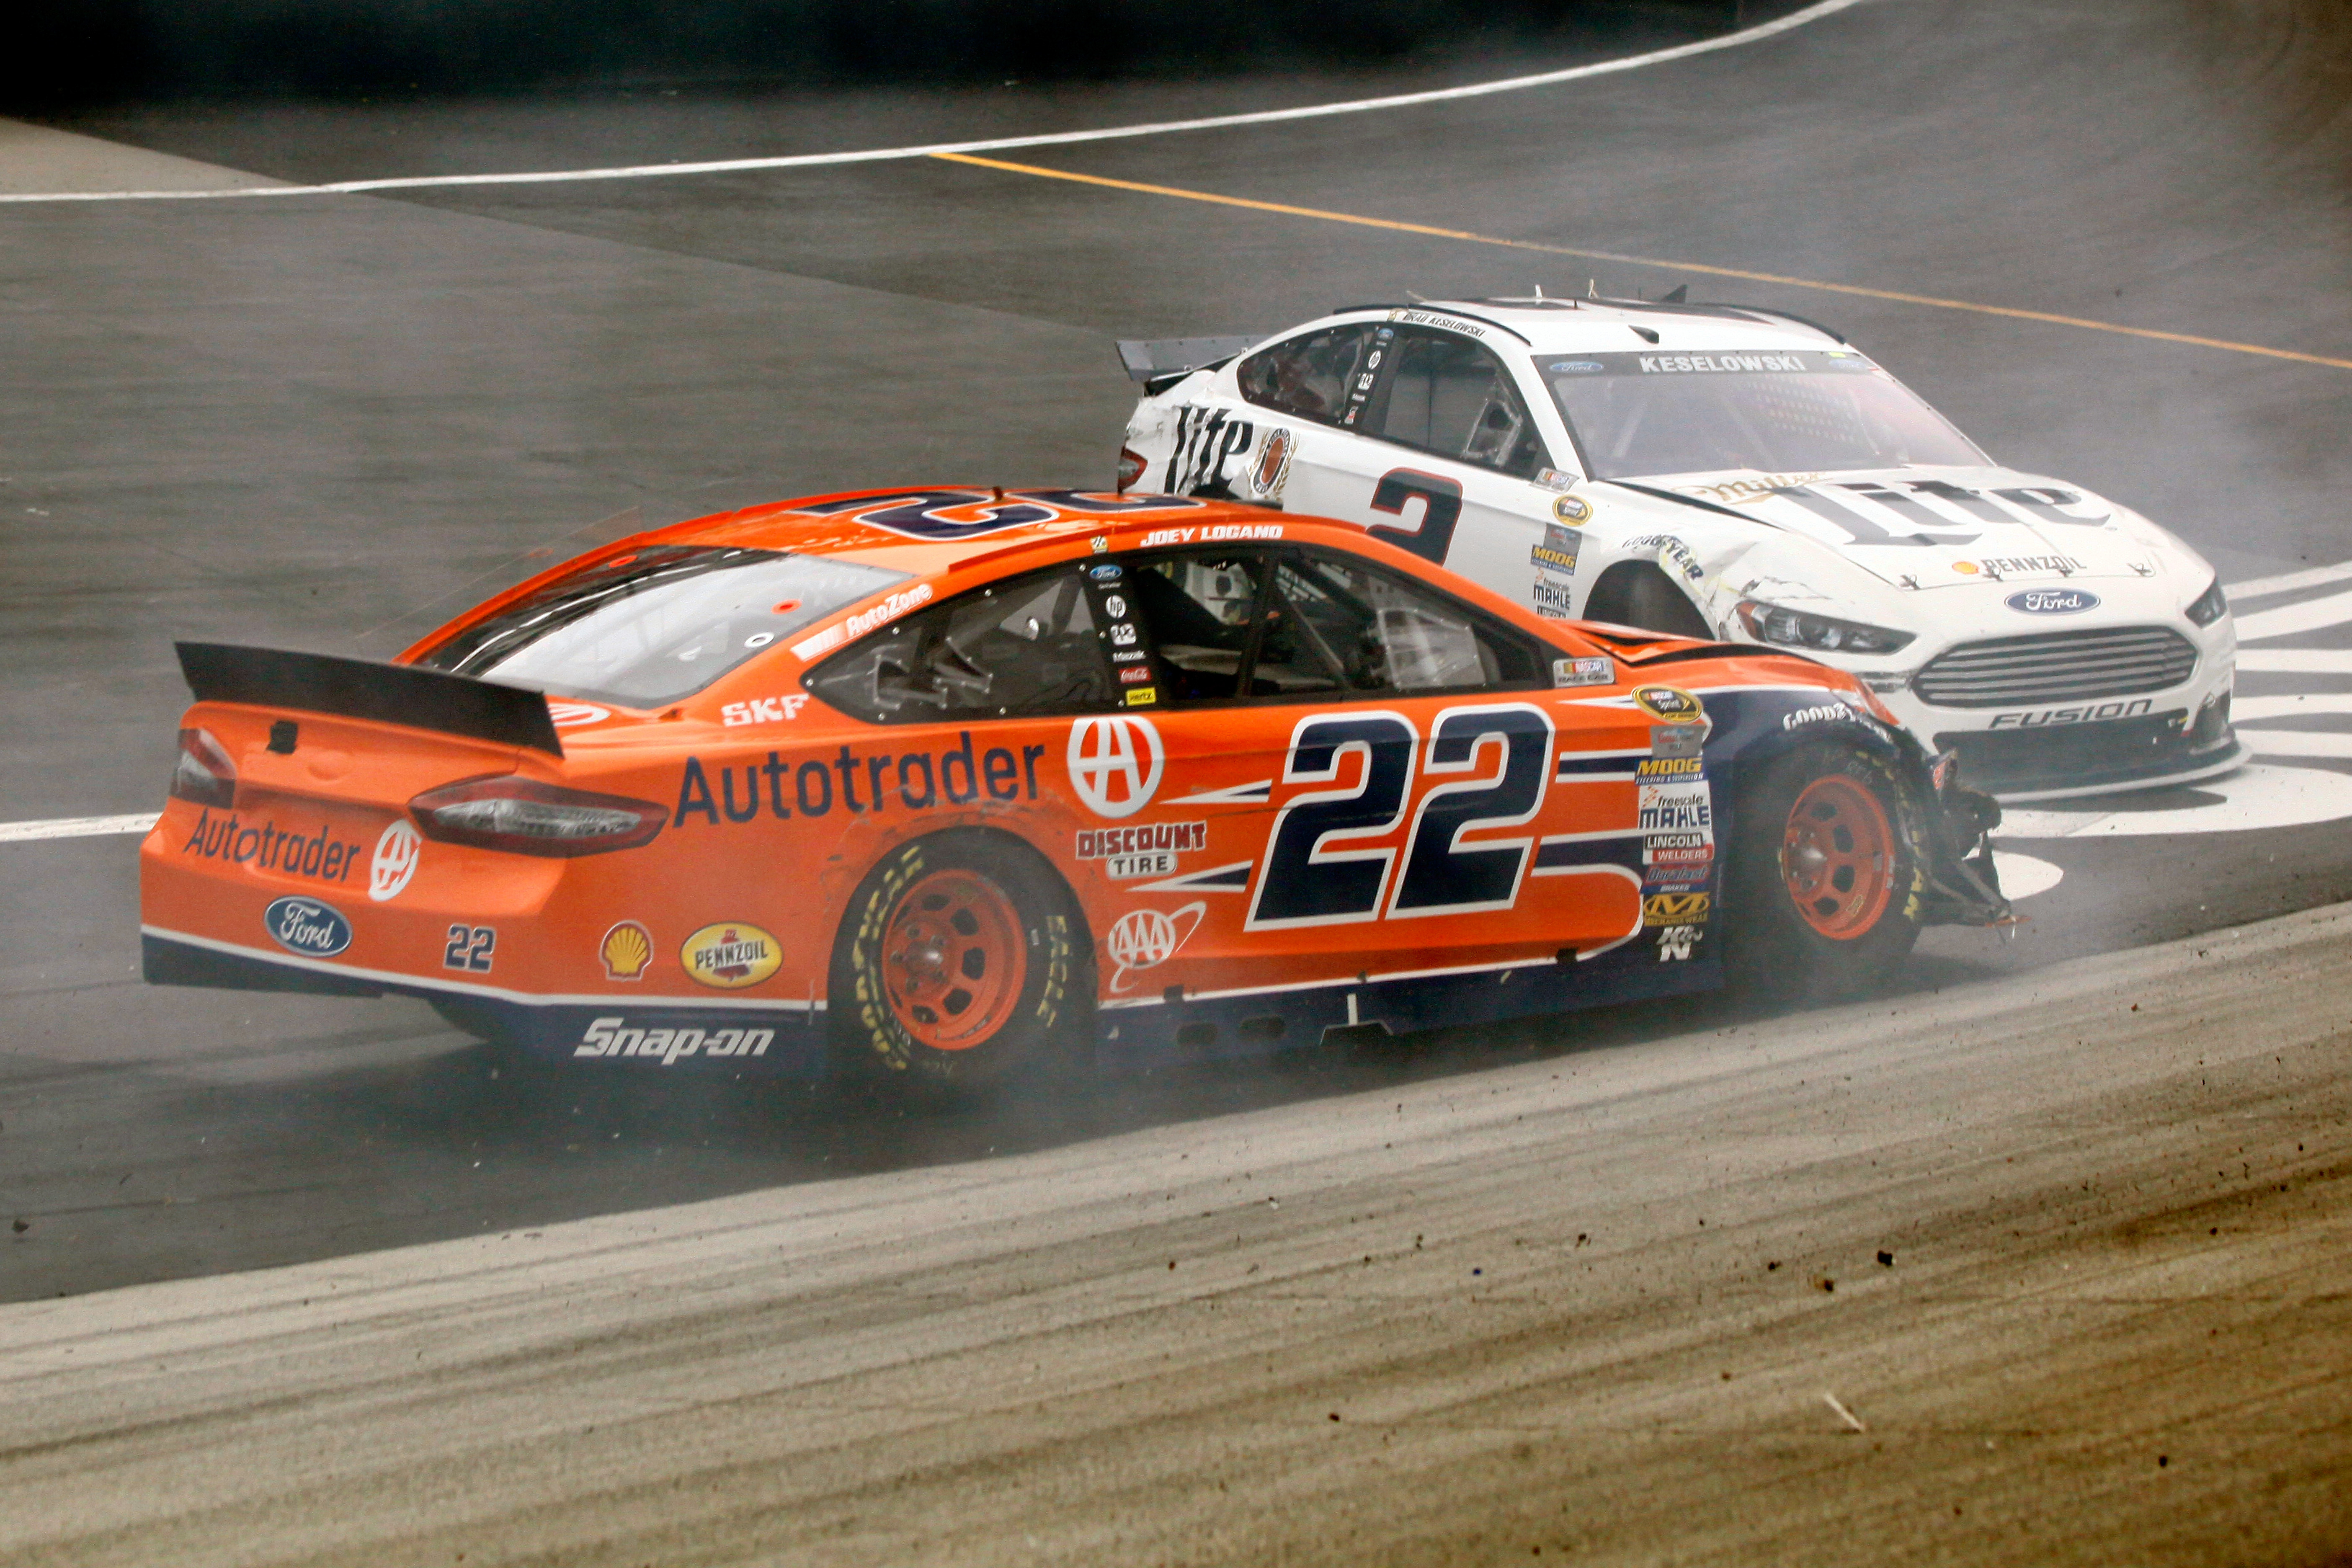 Cars For Sale Autotrader Bristol: Matt Kenseth Ended His 51 Race Drought By Winning The 55th